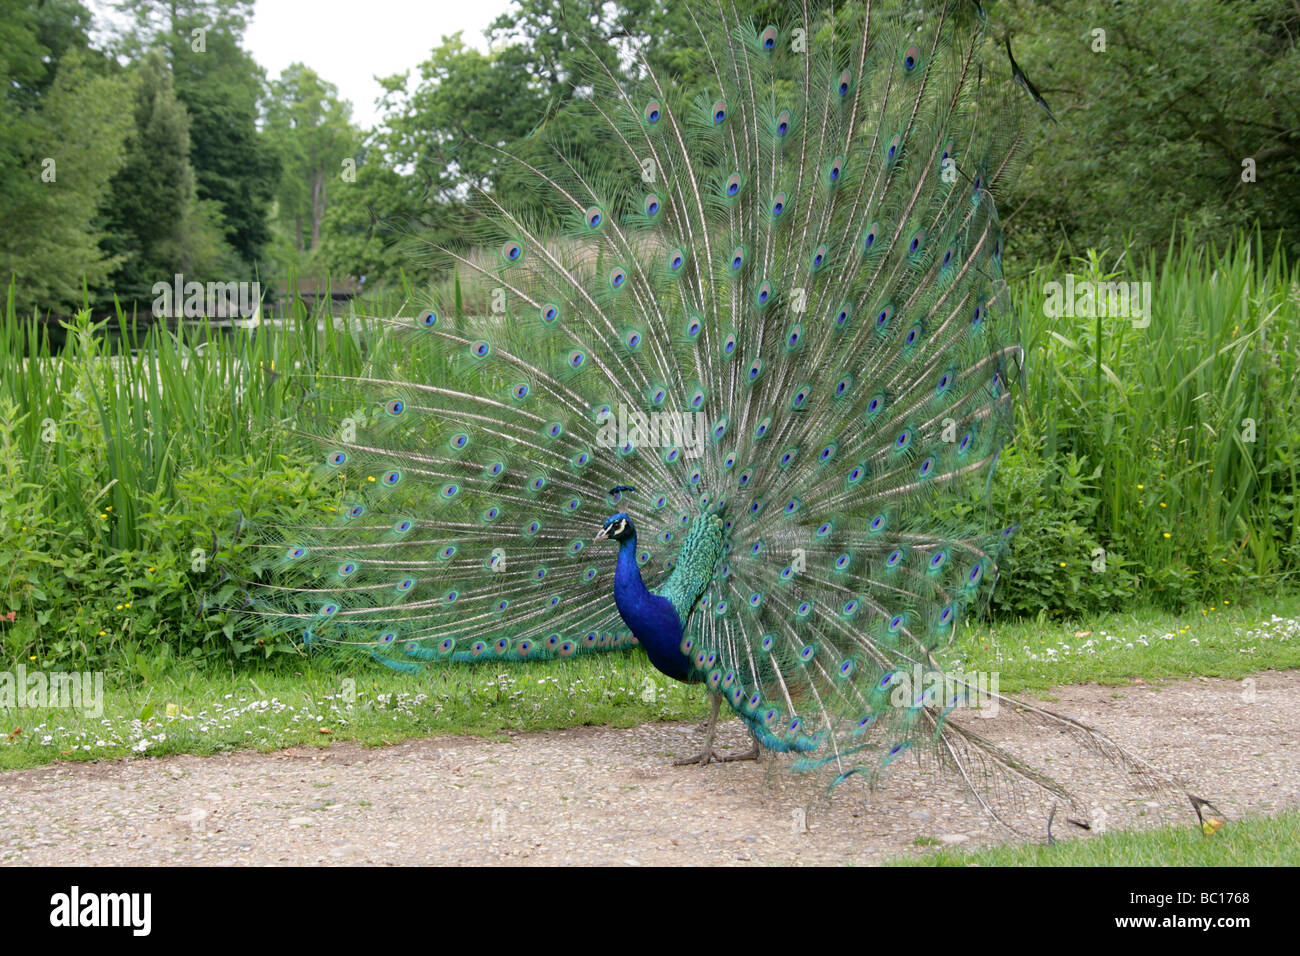 Peacock Pavo cristatus in Courtship Display - Stock Image